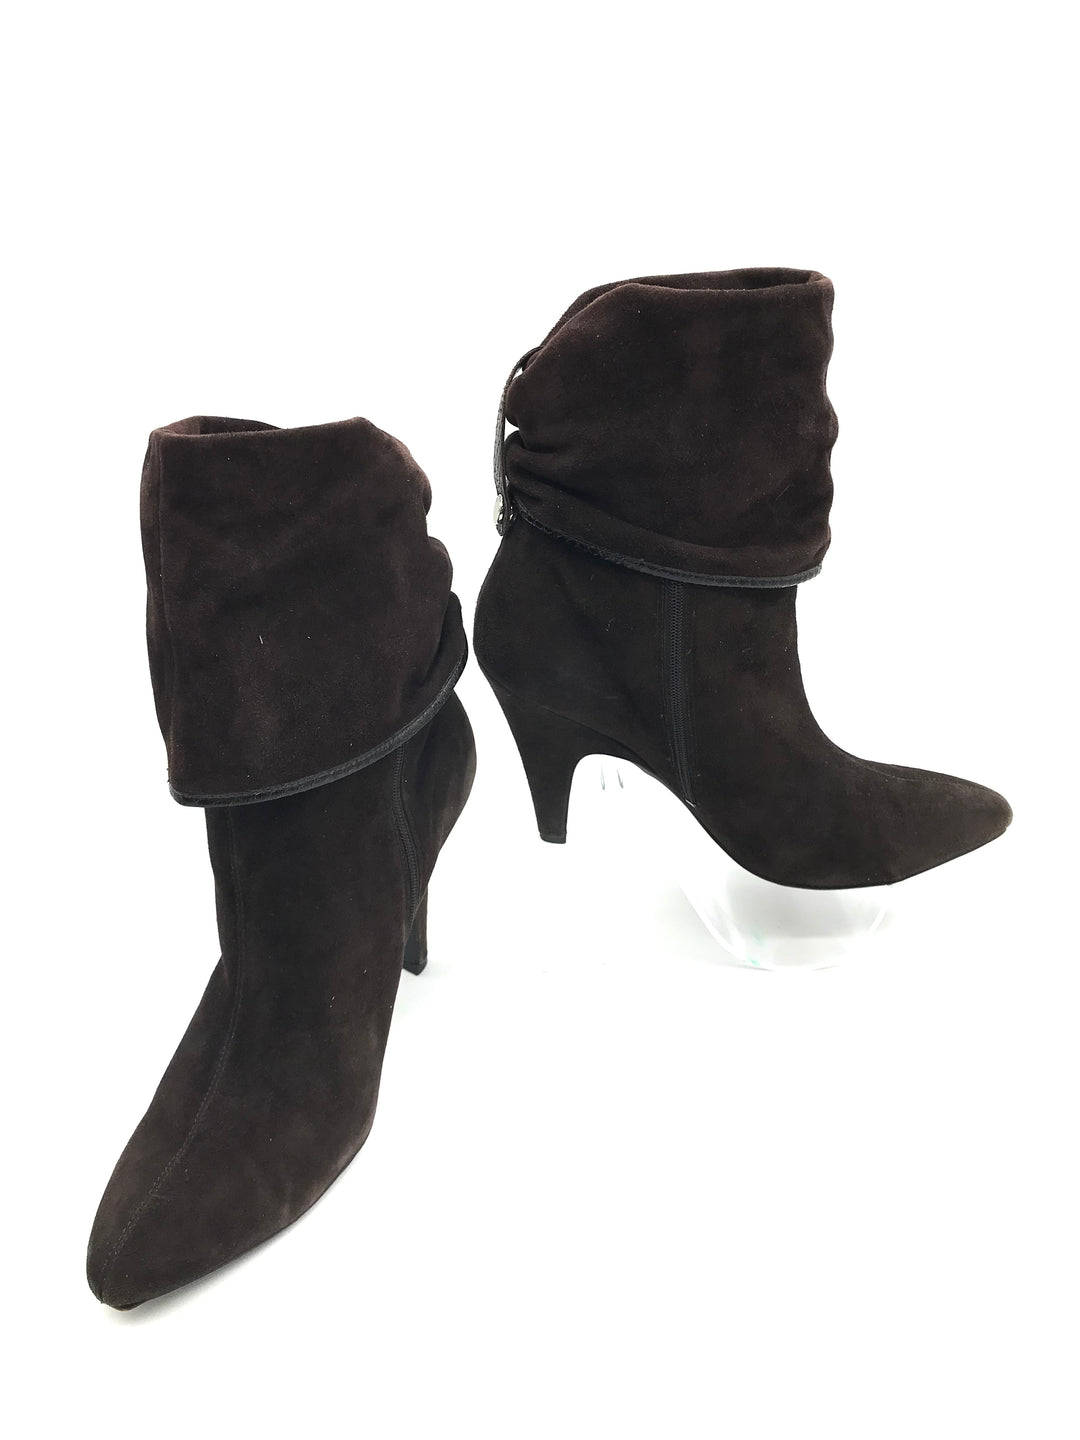 Primary Photo - BRAND: VIA SPIGA <BR>STYLE: BOOTS ANKLE <BR>COLOR: BROWN <BR>SIZE: 8.5 <BR>SKU: 262-26275-71064<BR><BR>COUPLE SLIGHT MARKS